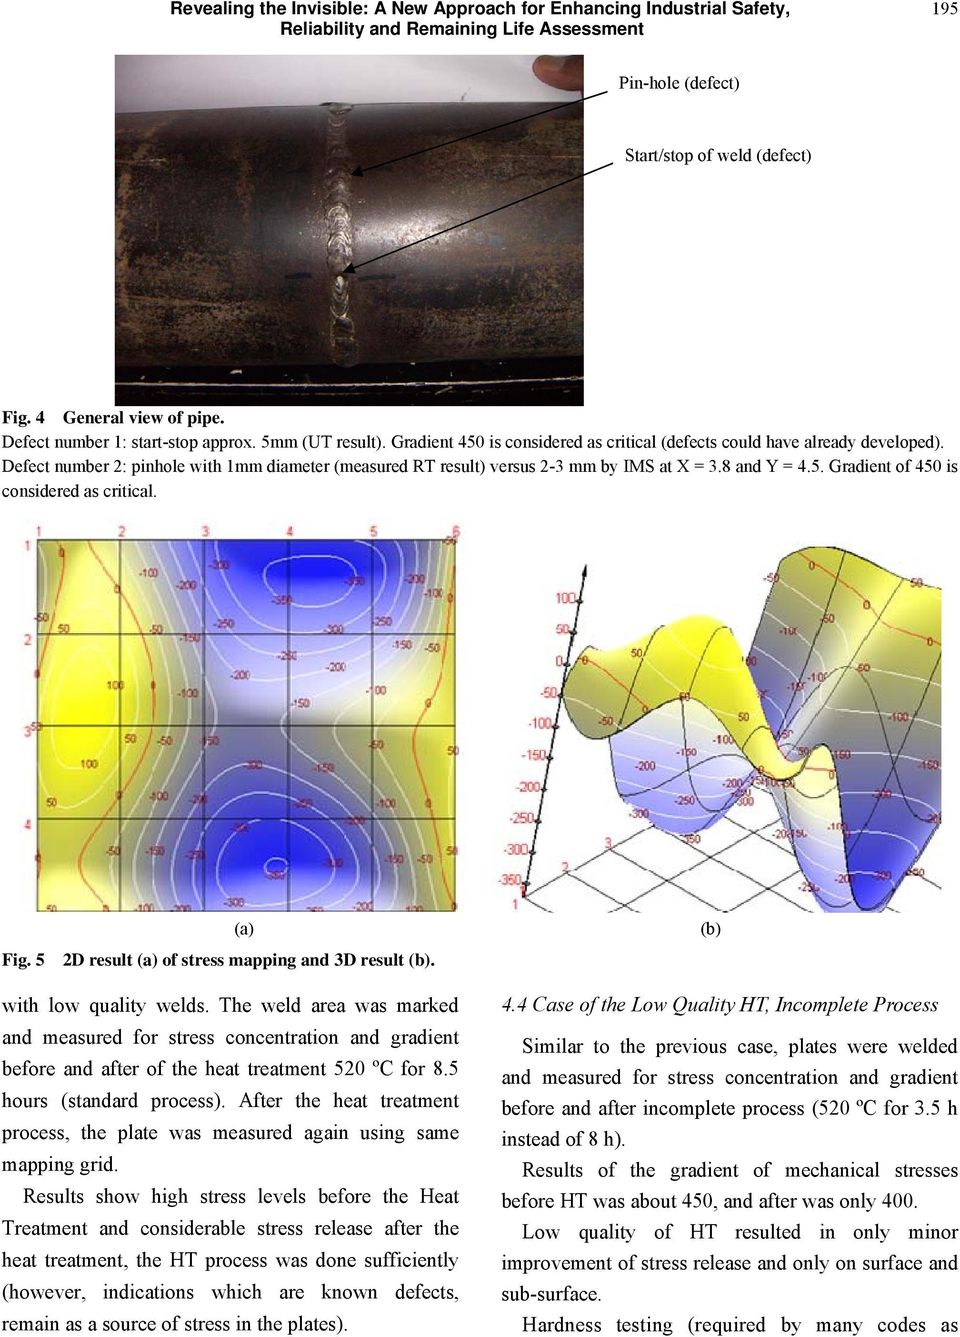 Revealing The Invisible A New Approach For Enhancing Industrial Welding Defects Diagram 8 And Y 45 Gradient Of 450 Is Considered As Critical Fig